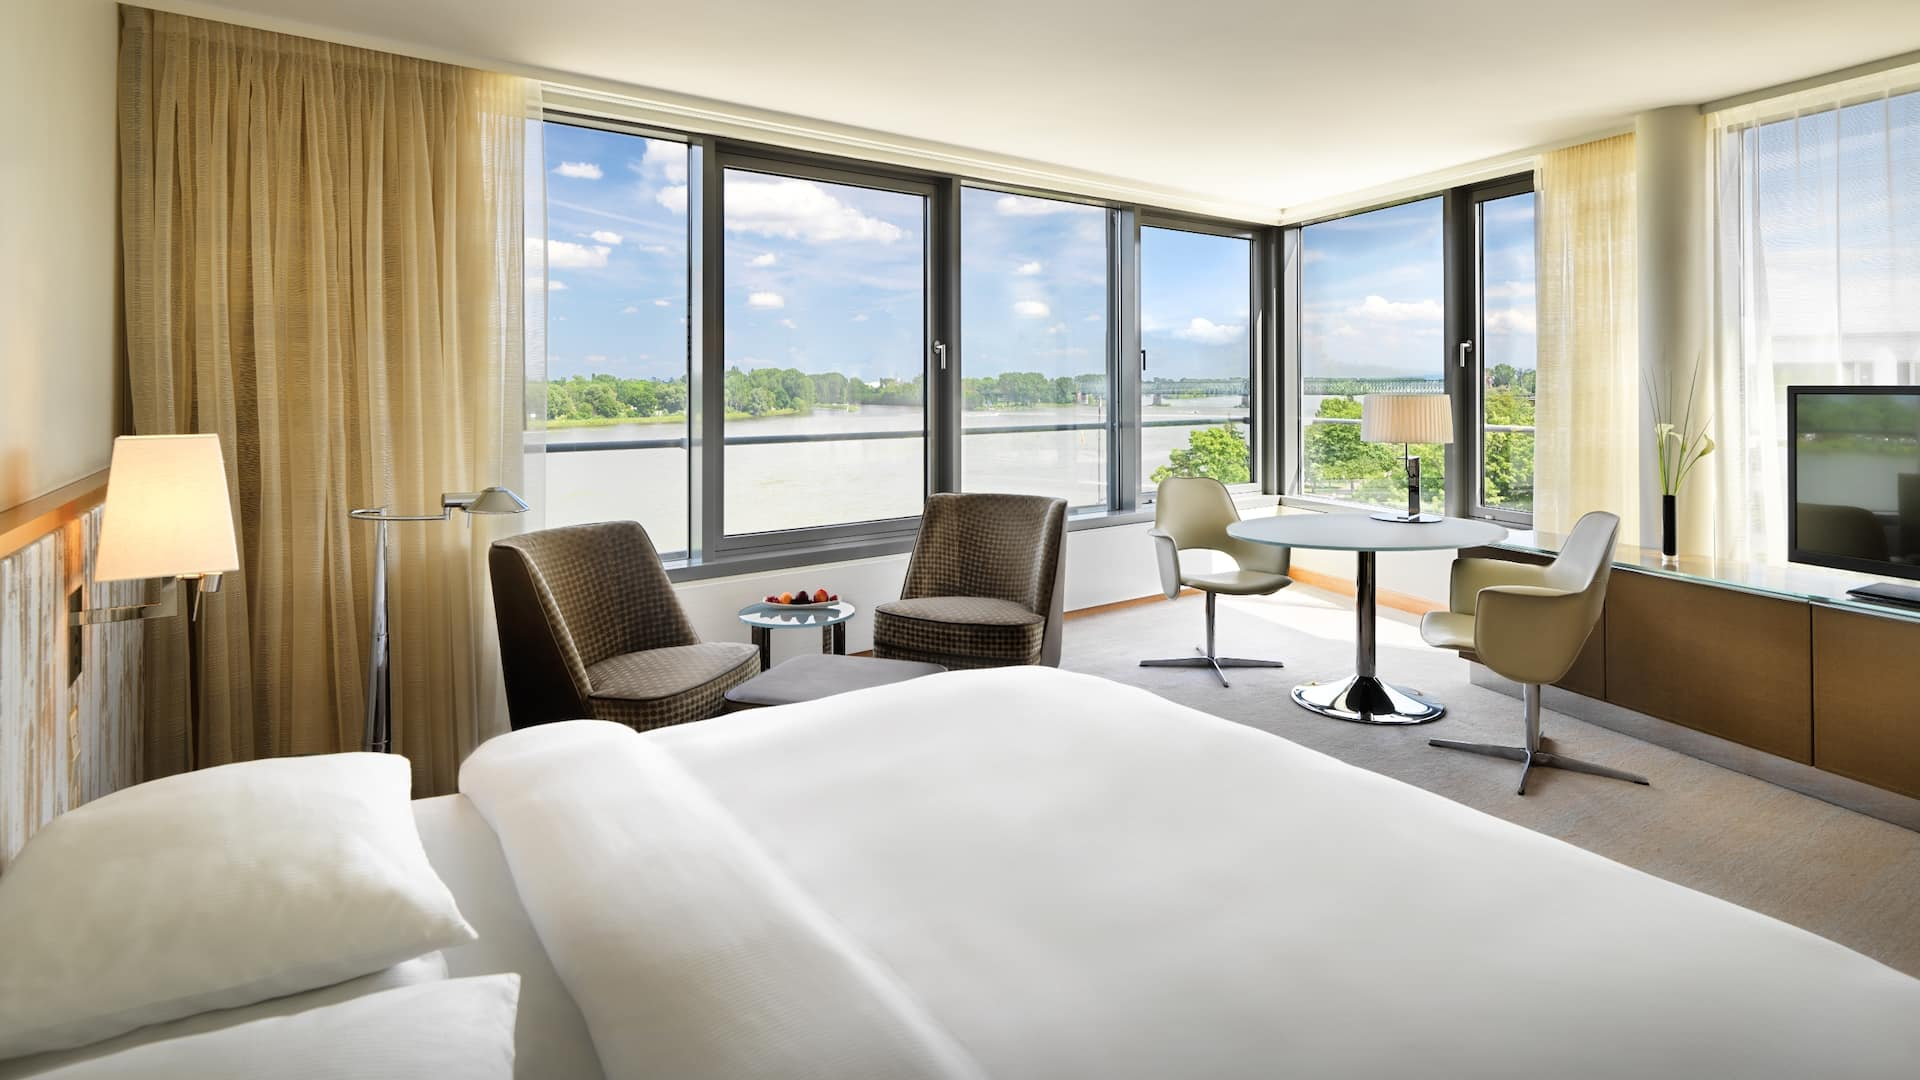 Rhine River view at Hyatt Regency Mainz